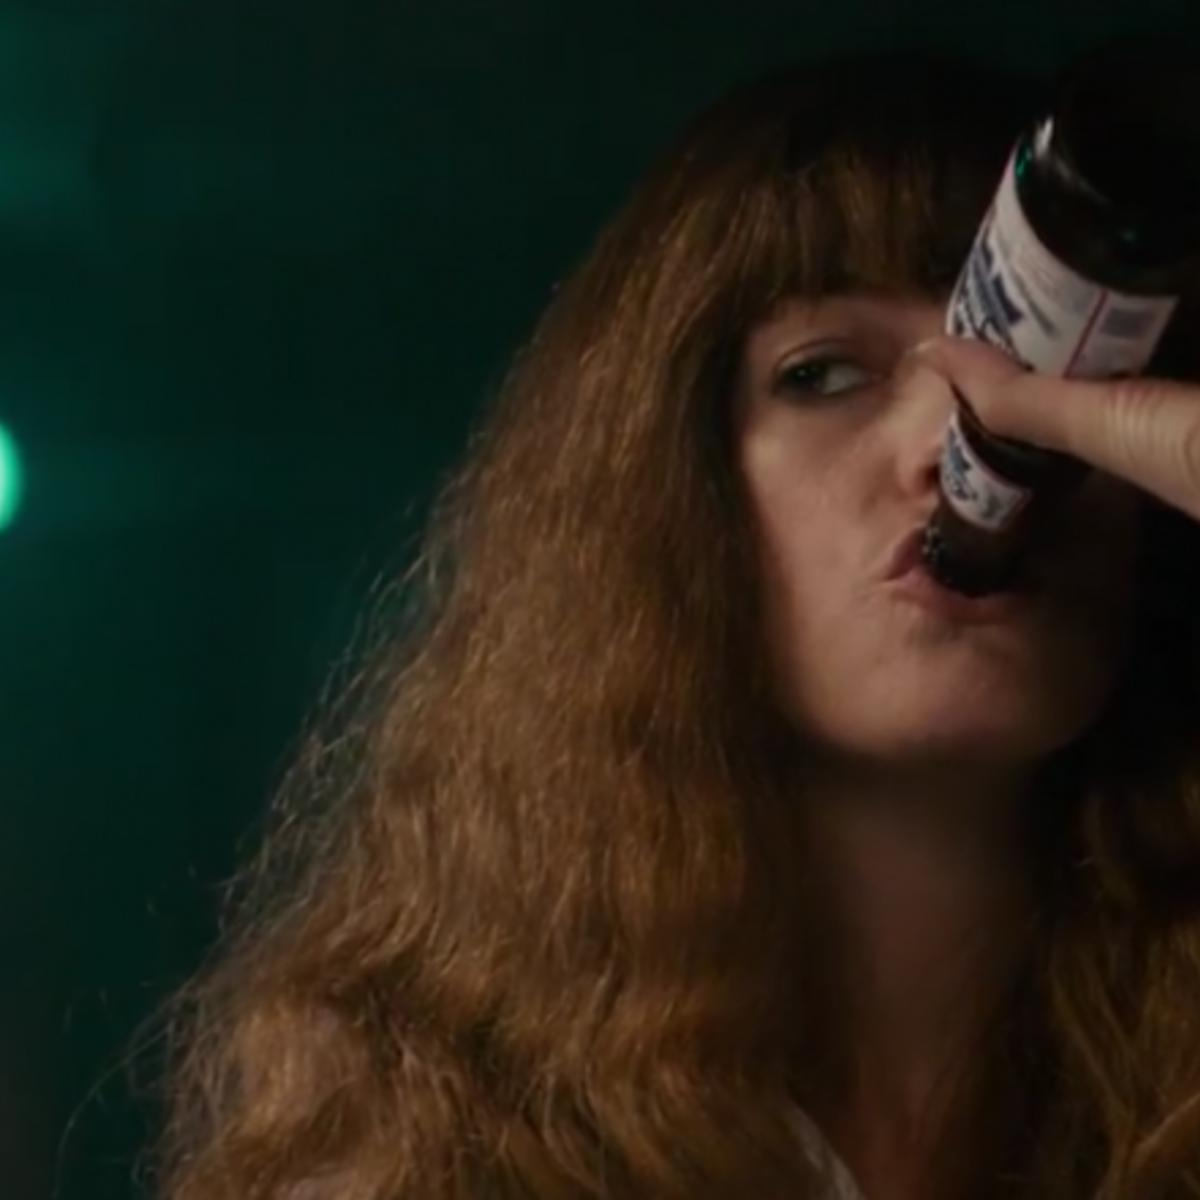 colossal-movie-image-anne-hathaway-1075x441.png